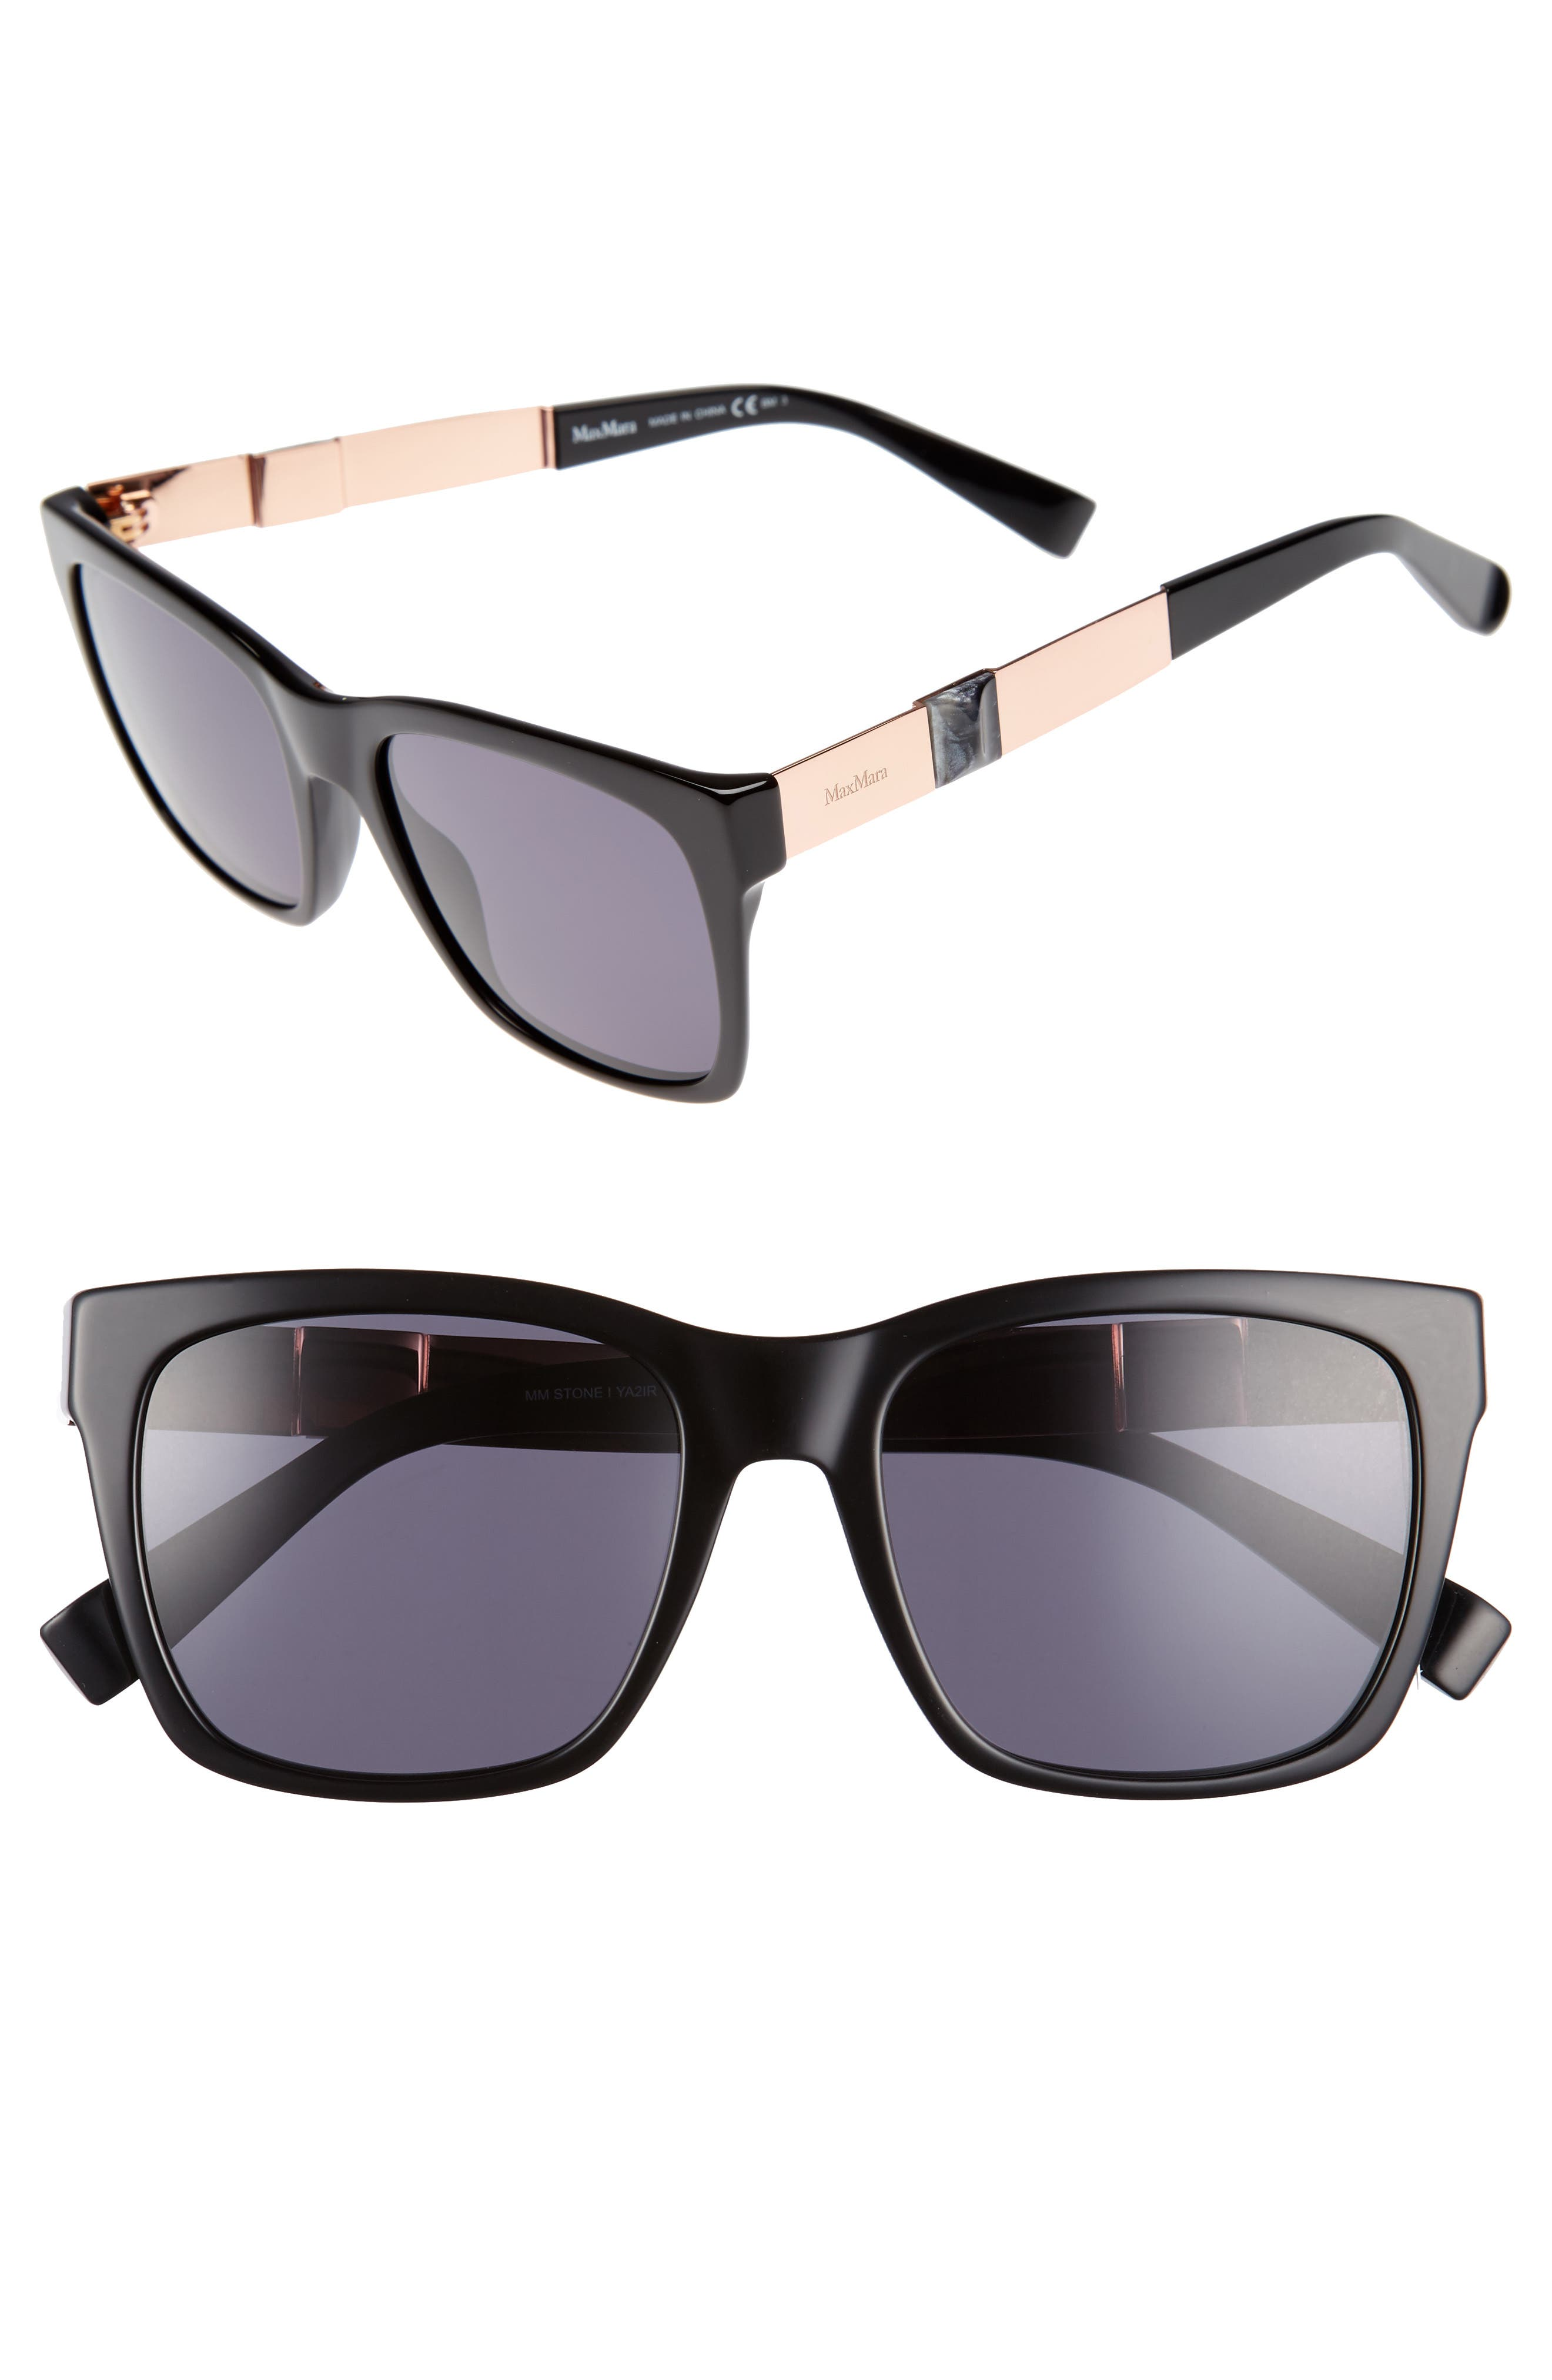 Stone 54mm Gradient Sunglasses,                             Main thumbnail 1, color,                             001